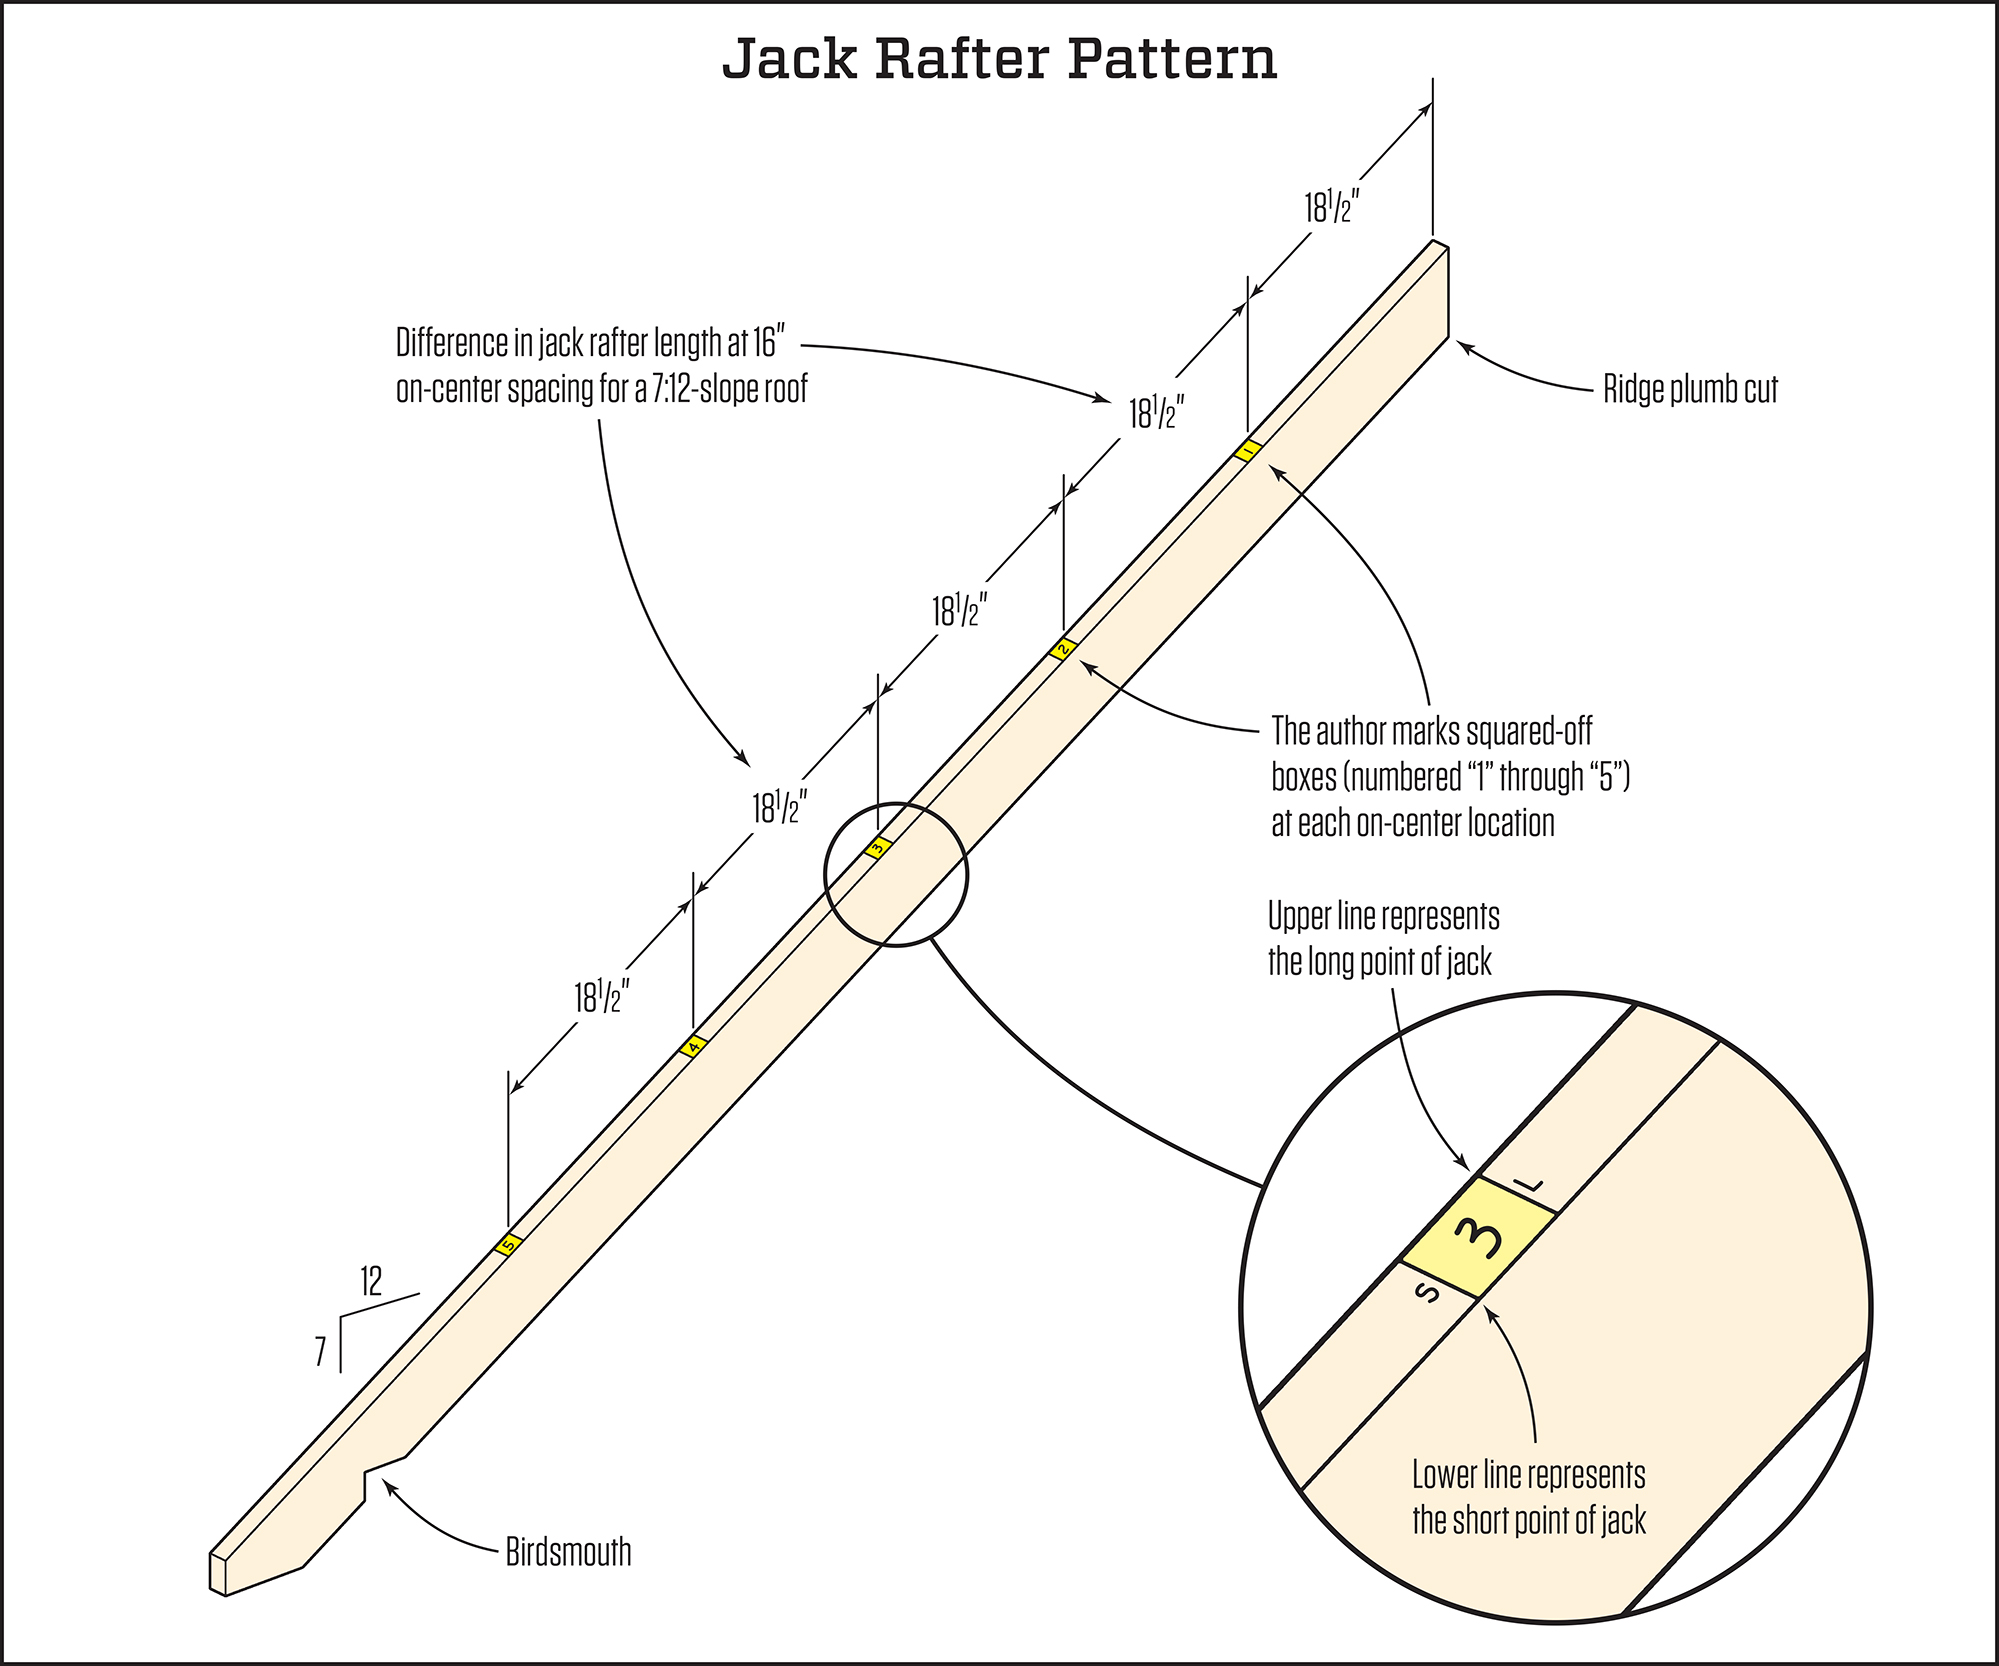 Fast Jack Rafter Layout And Cutting Jlc Online Framing